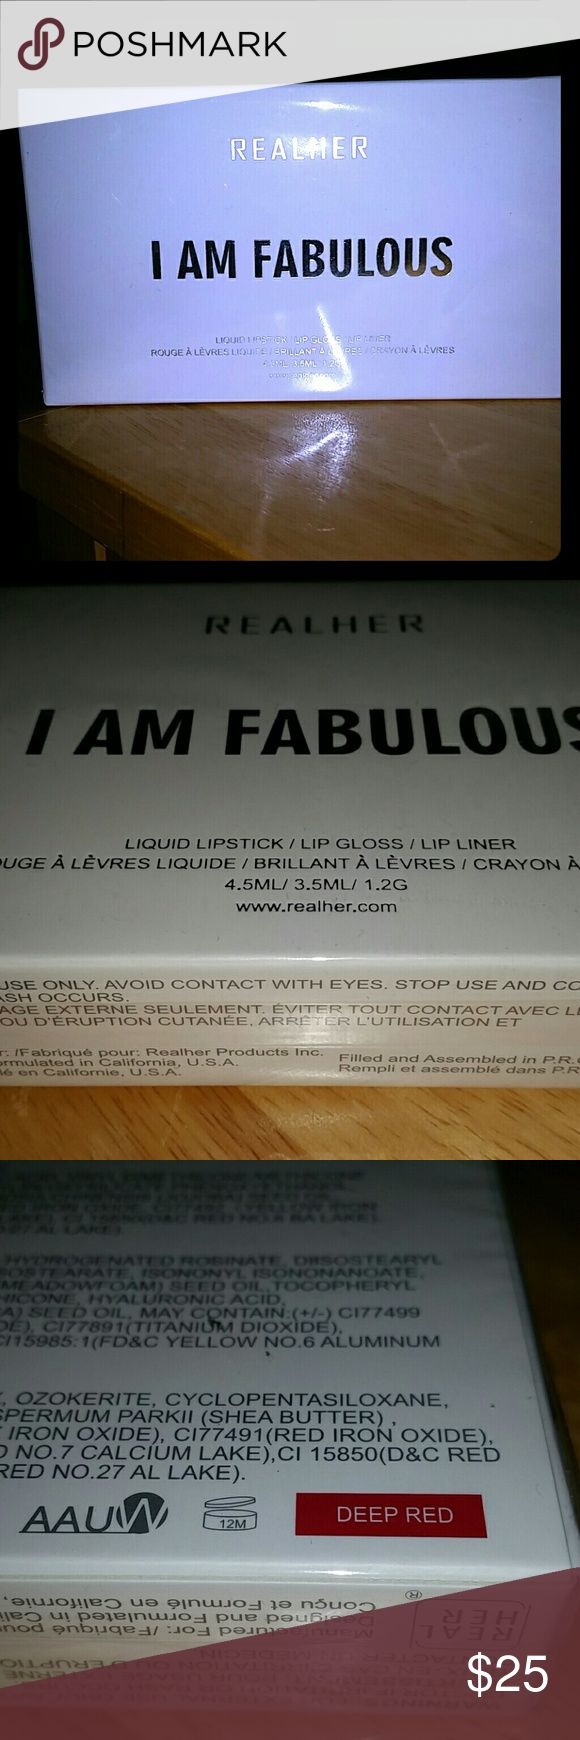 "New in box Real her 3 pc deep red lipstick gloss Brand new in box. Real her ""I am fabulous "" 3 pc lip set. This kit is deep red. Includes liquid lipstick, lip gloss and lip liner. Made from natural ingredients. realher Makeup Lip Liner"